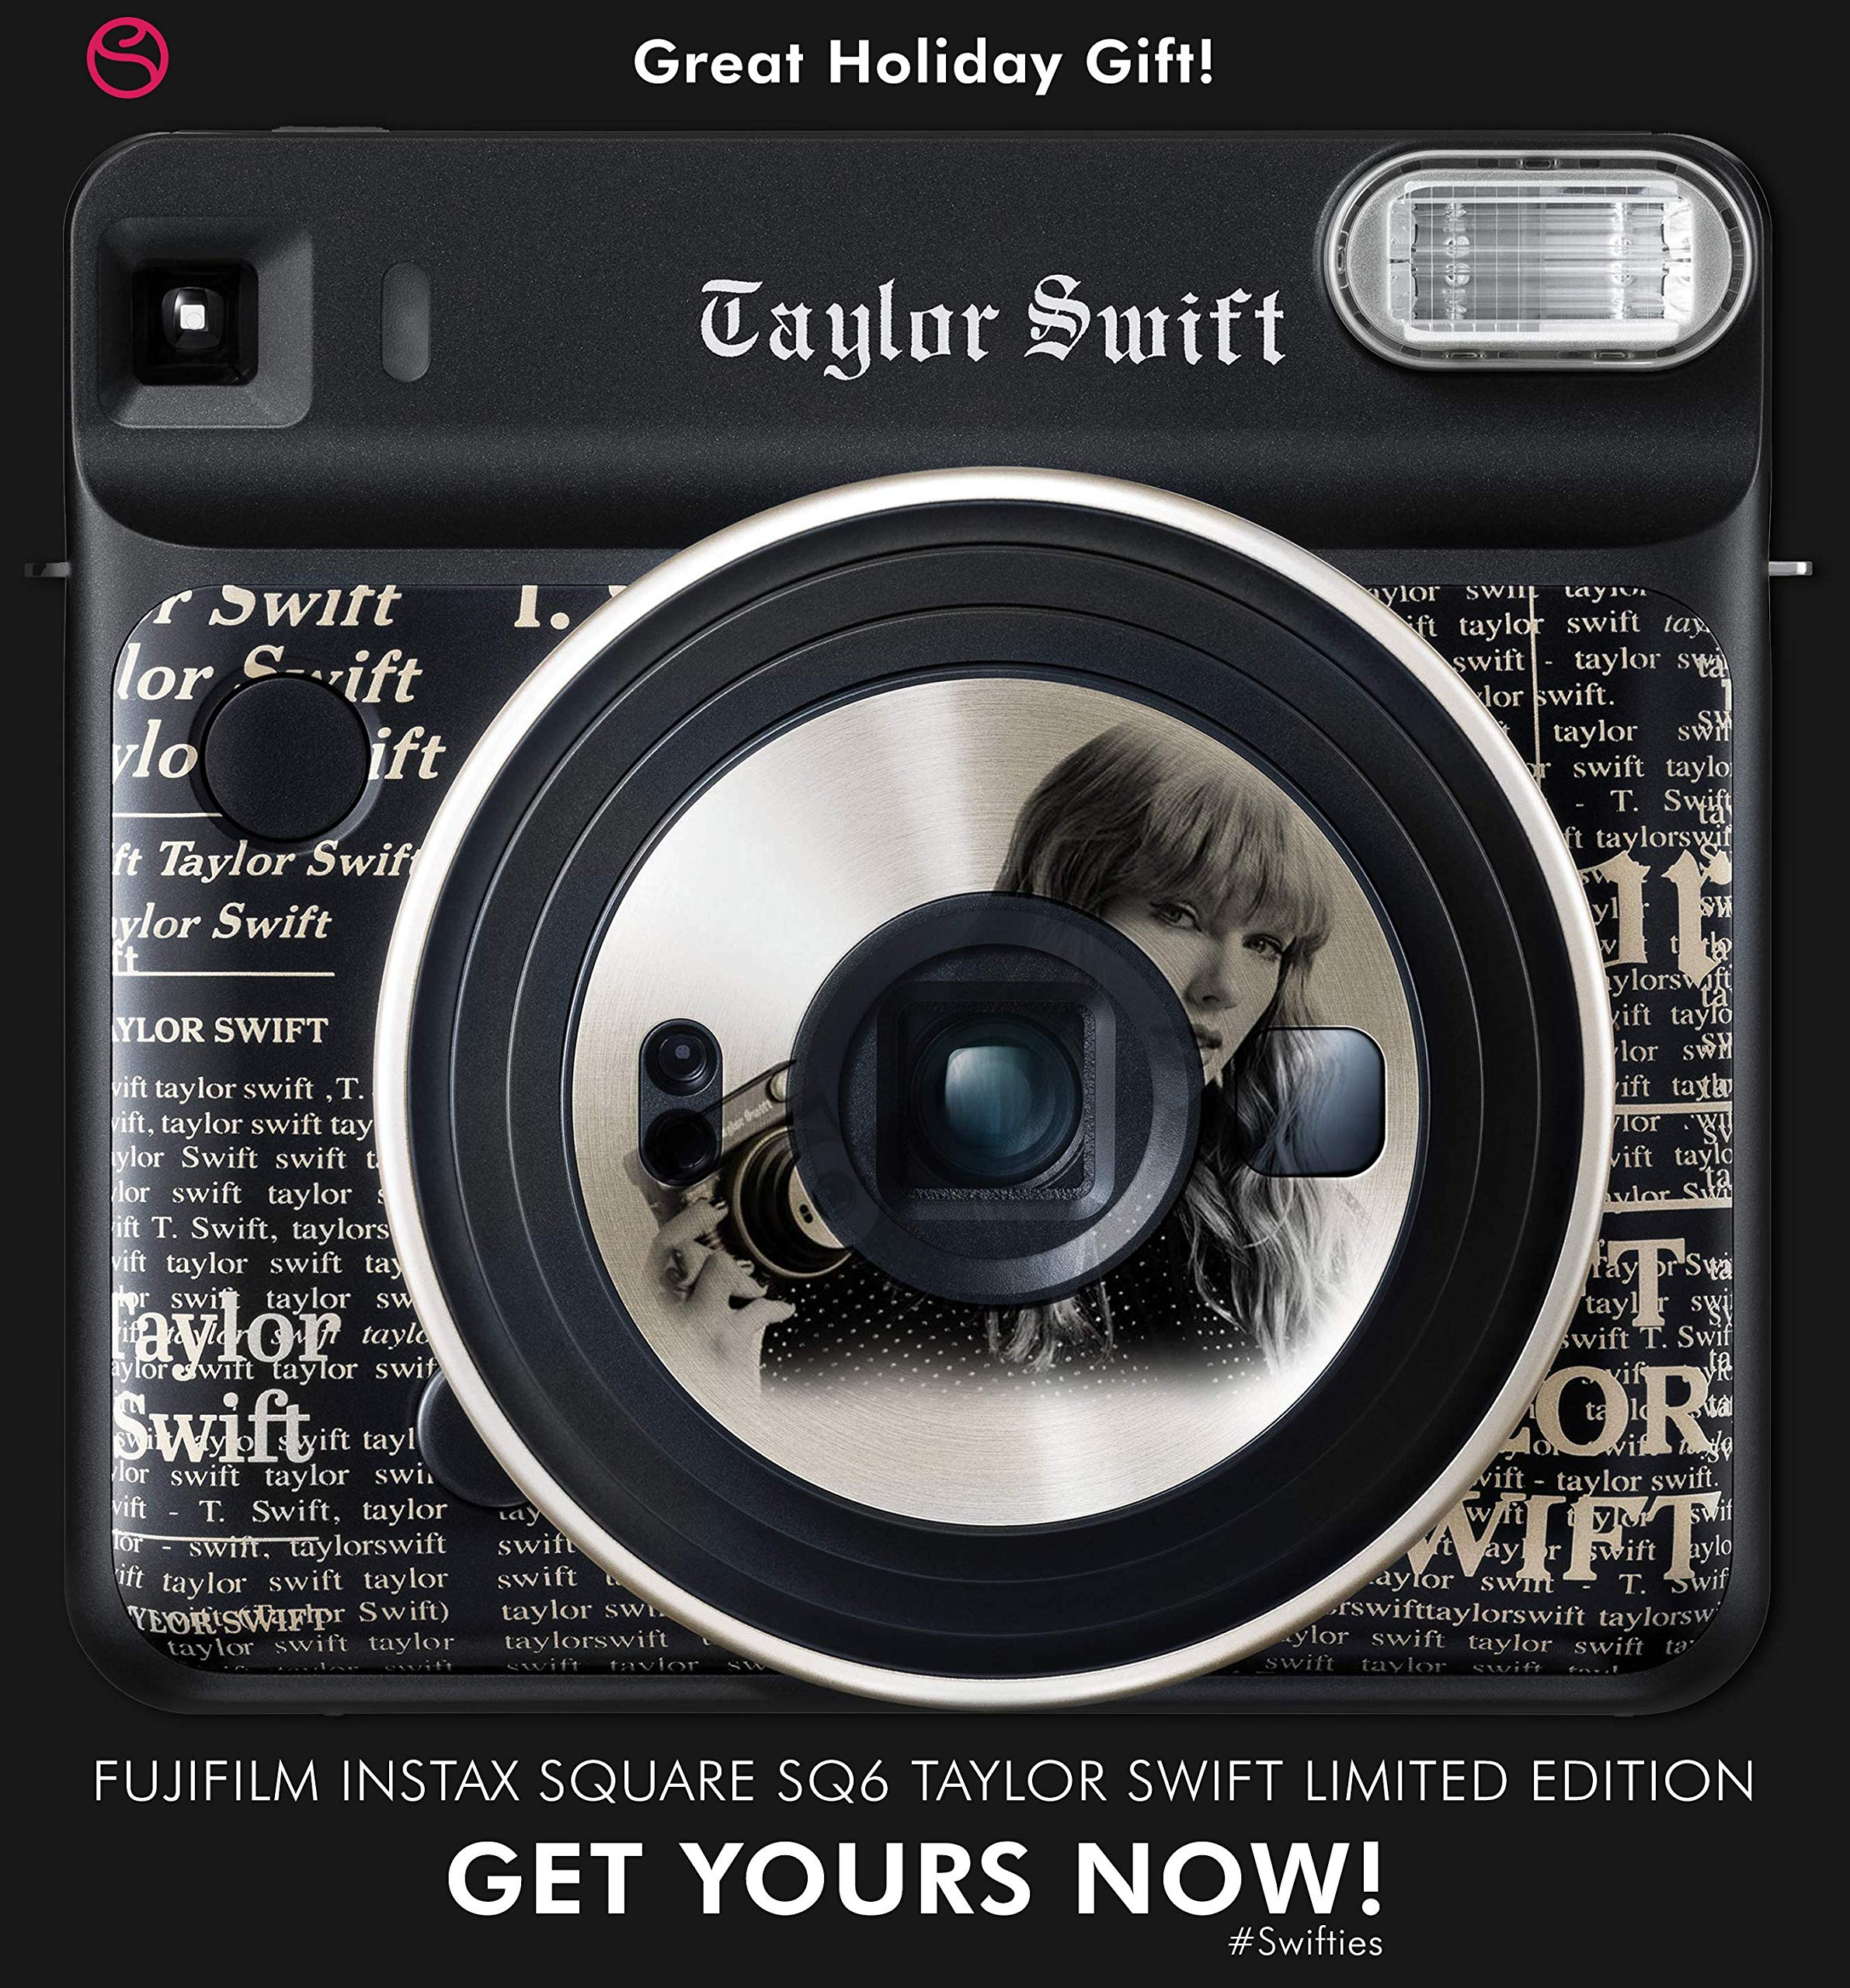 Fujifilm instax Square SQ6 Instant Film Camera (Taylor Swift Limited Edition) with Square Instant Film Bundle by Fujifilm (Image #3)